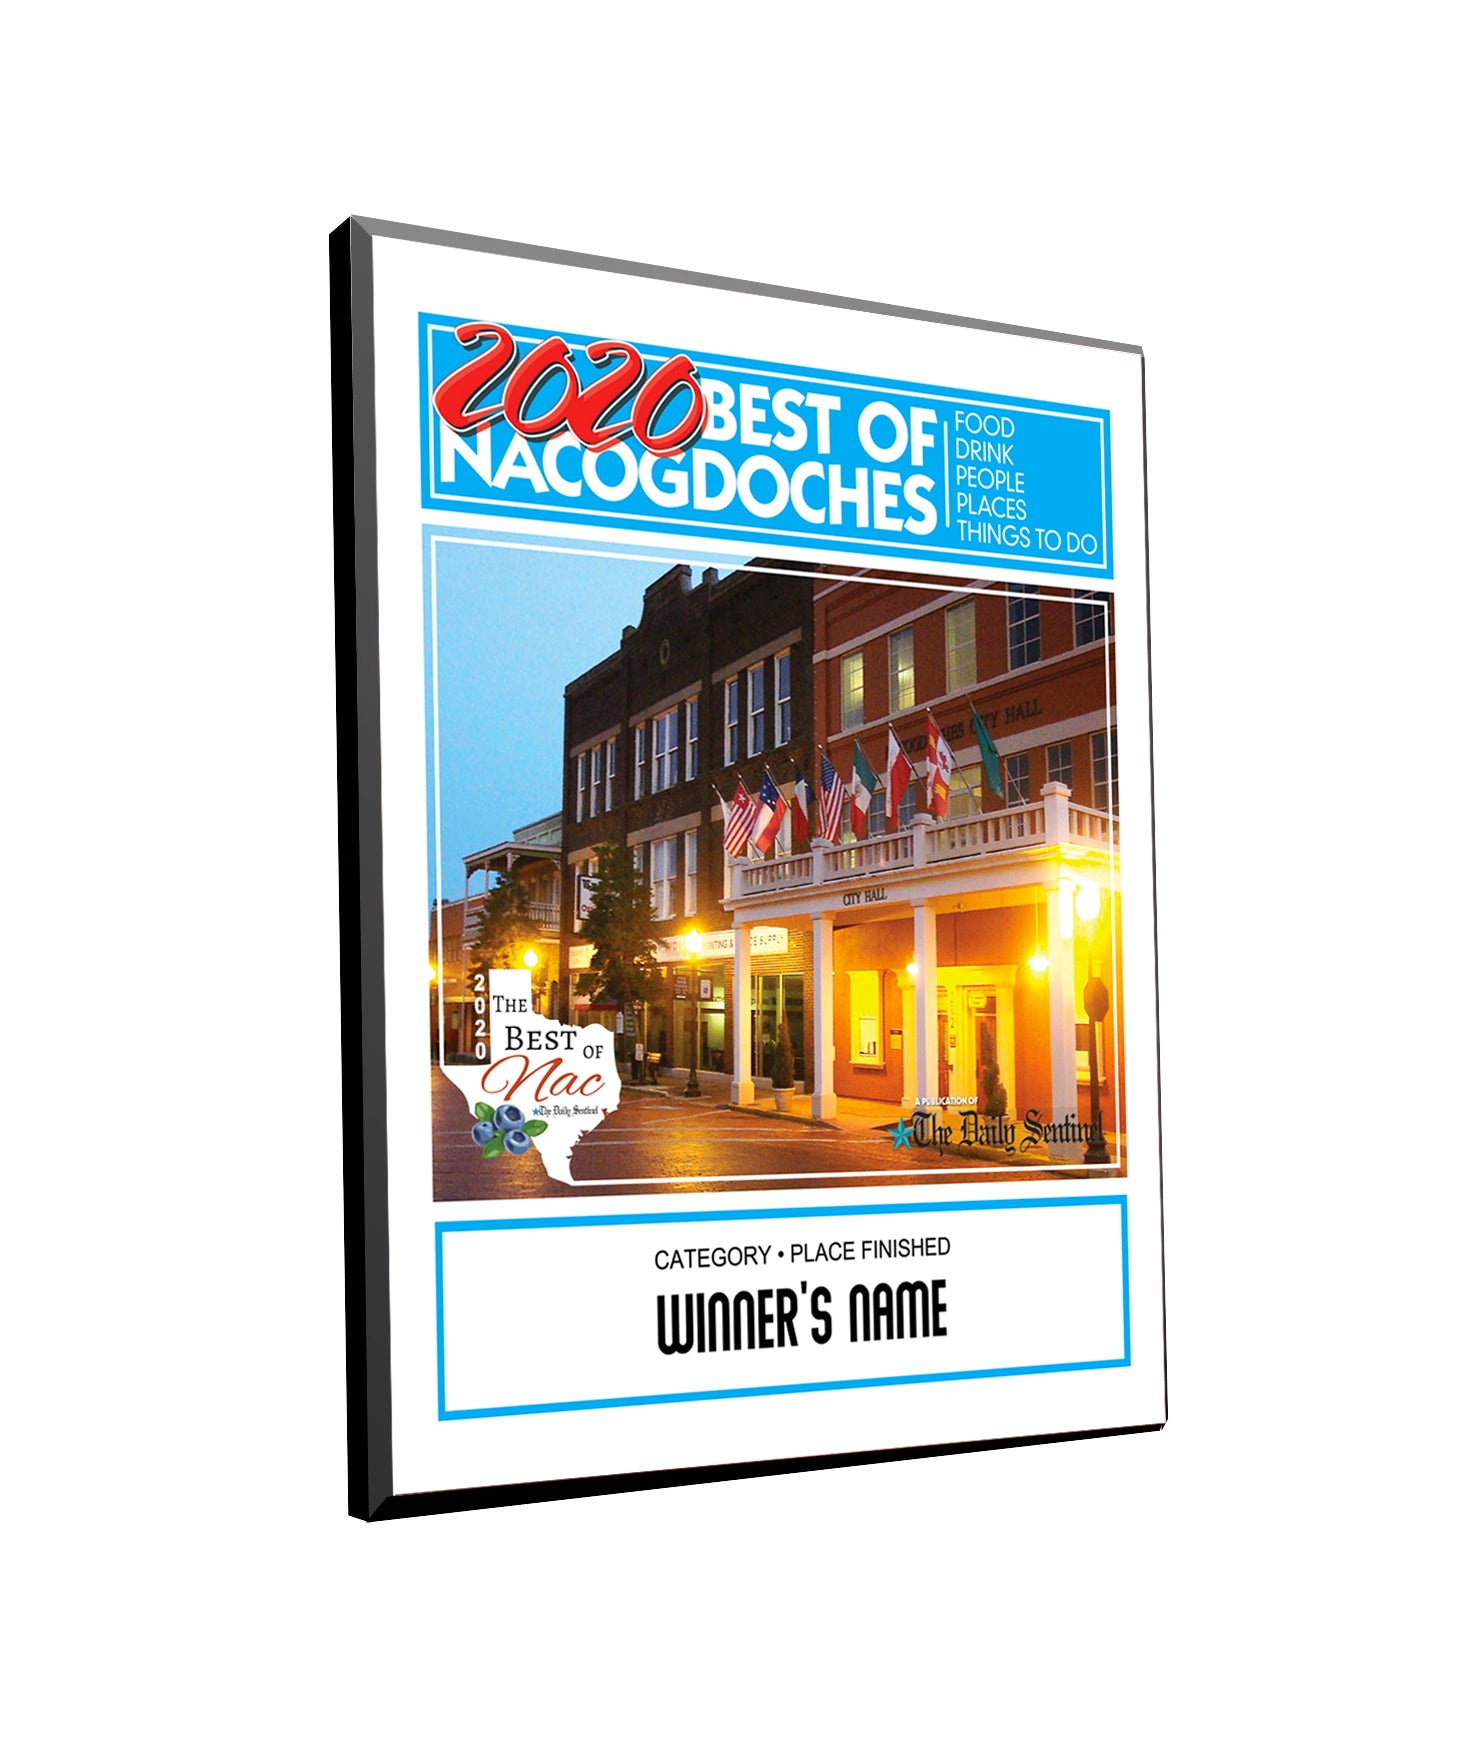 The Daily Sentinel Best of Nacogdoches 2020 Plaque - Modern Archival Mount by NewsKeepsake